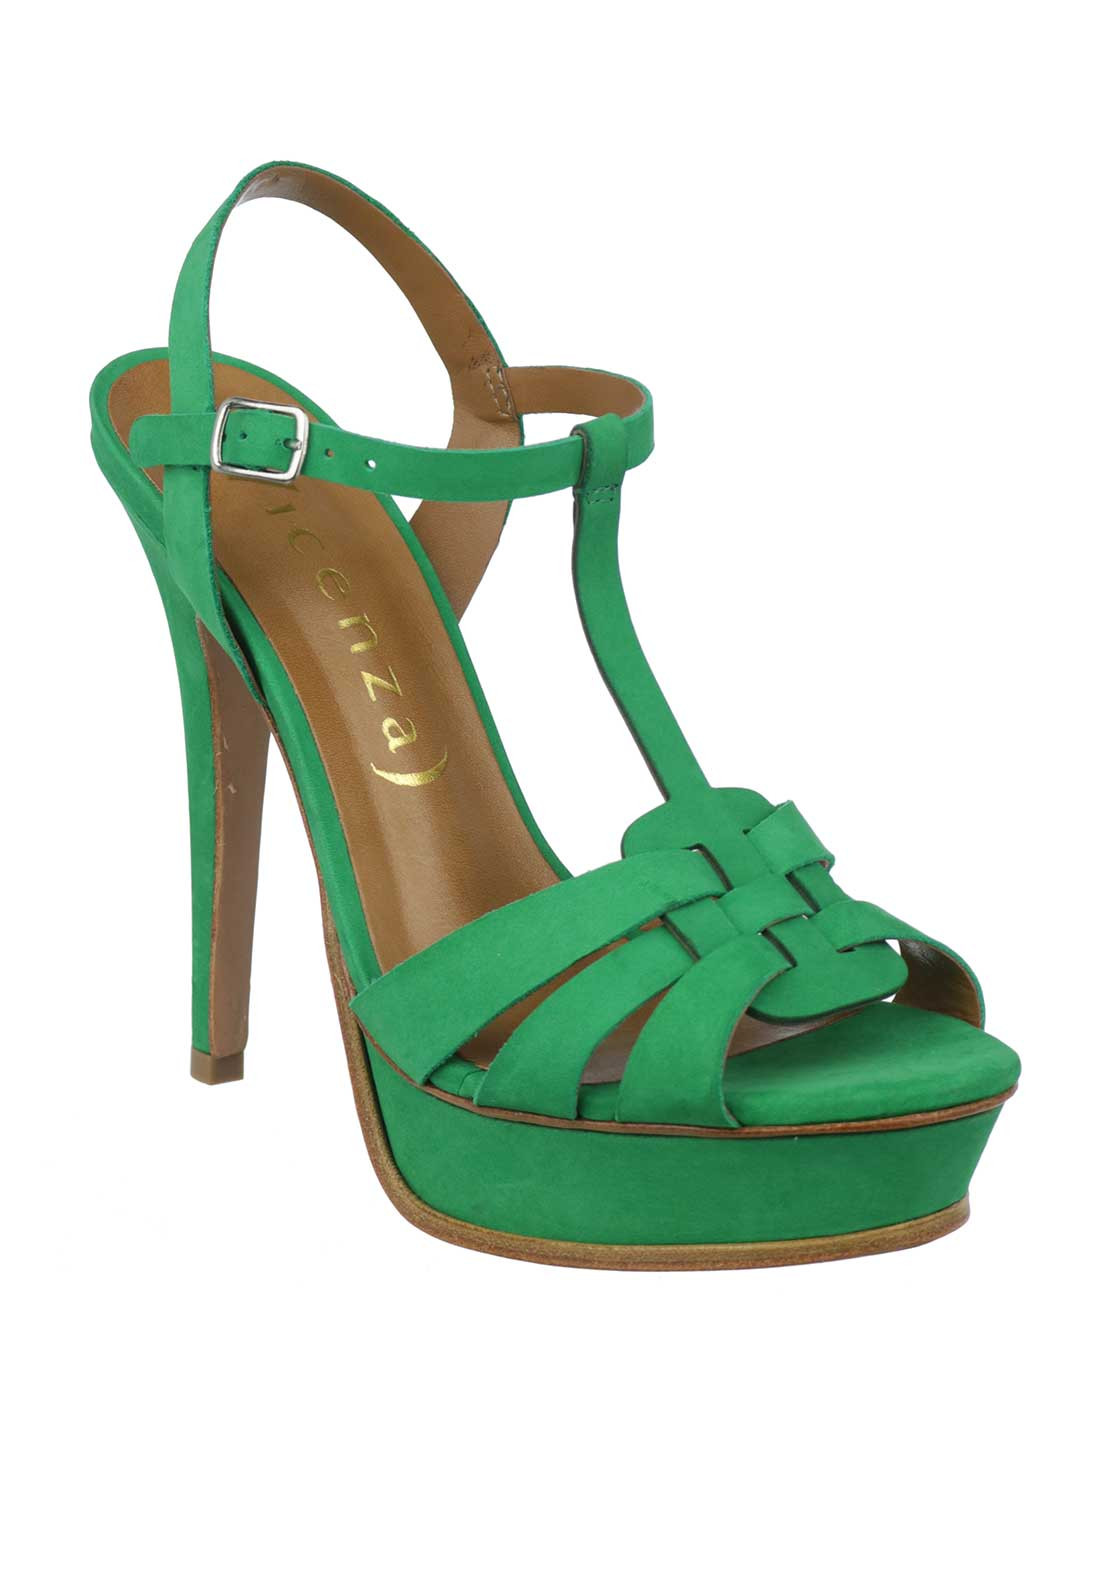 Unique Footwear Suede T-Bar Platform Heeled Sandals, Green